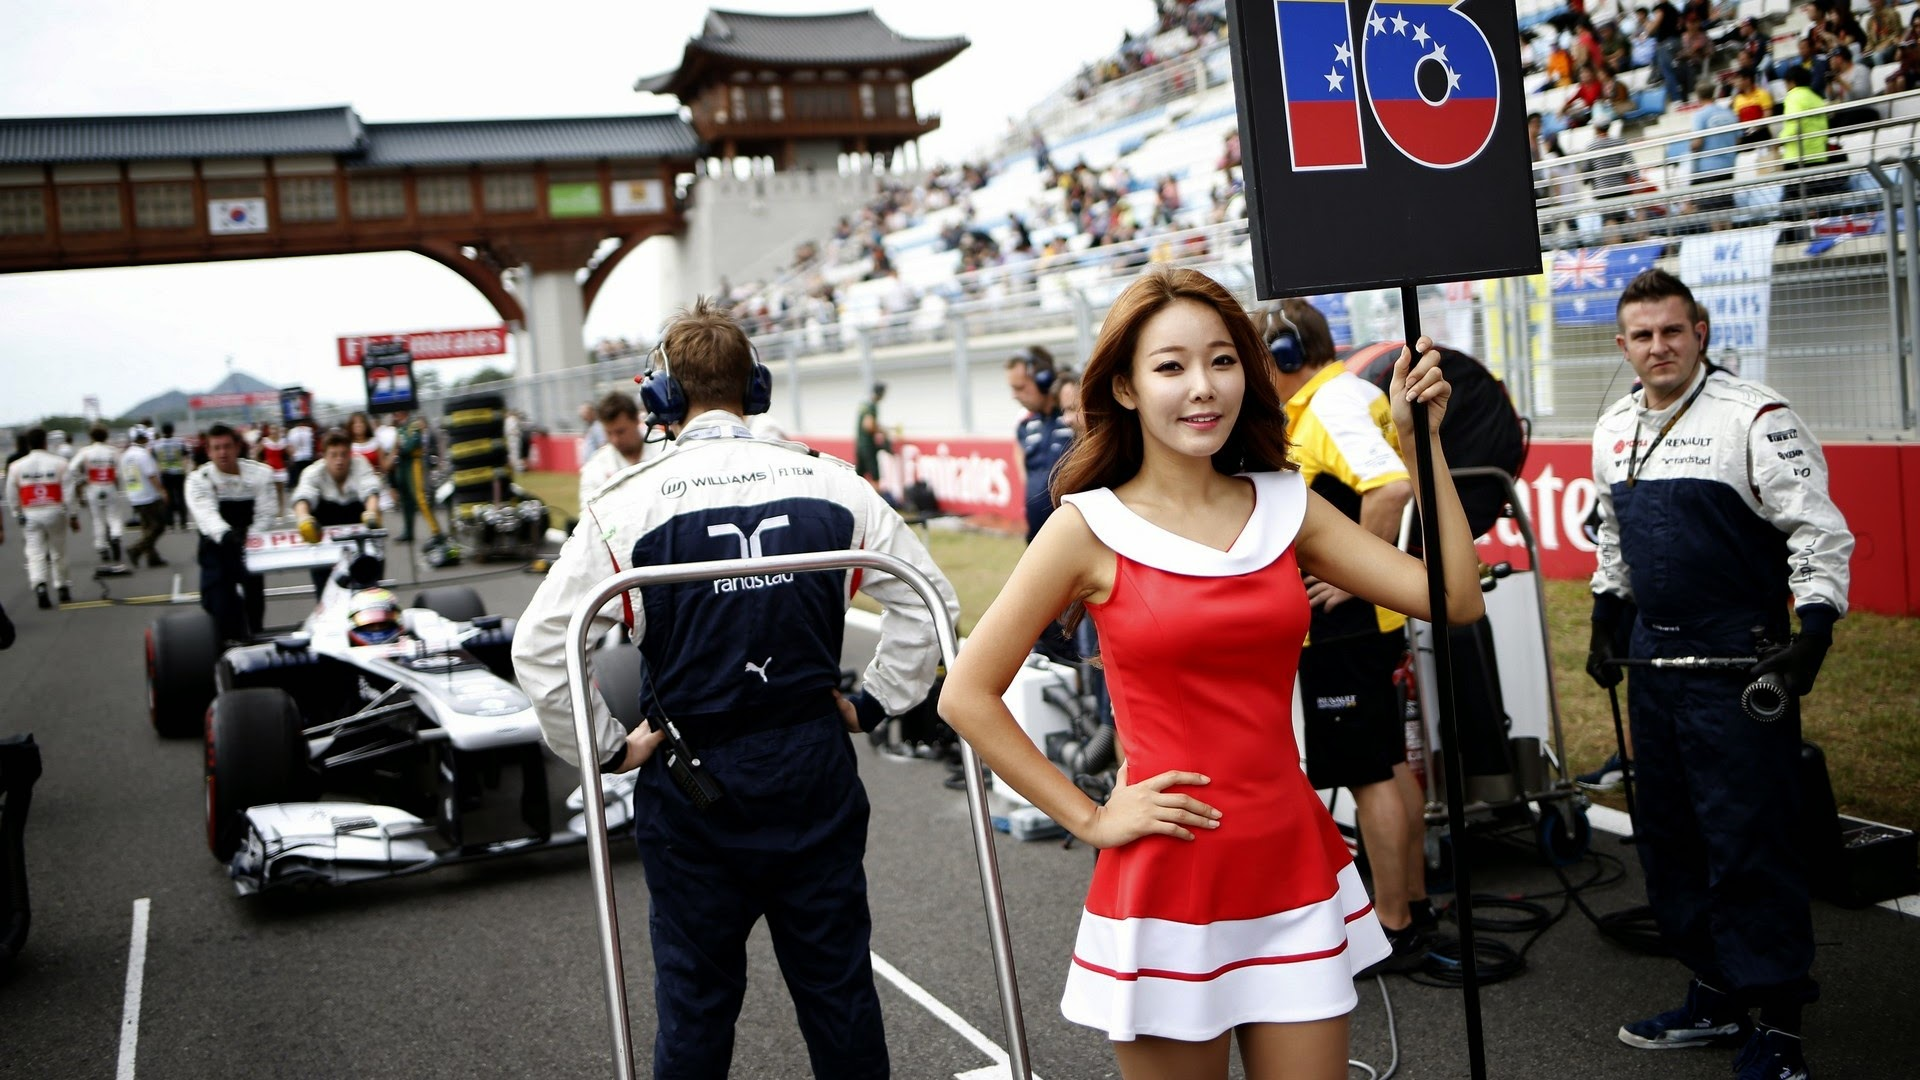 grid girls hd wallpapers - photo #36